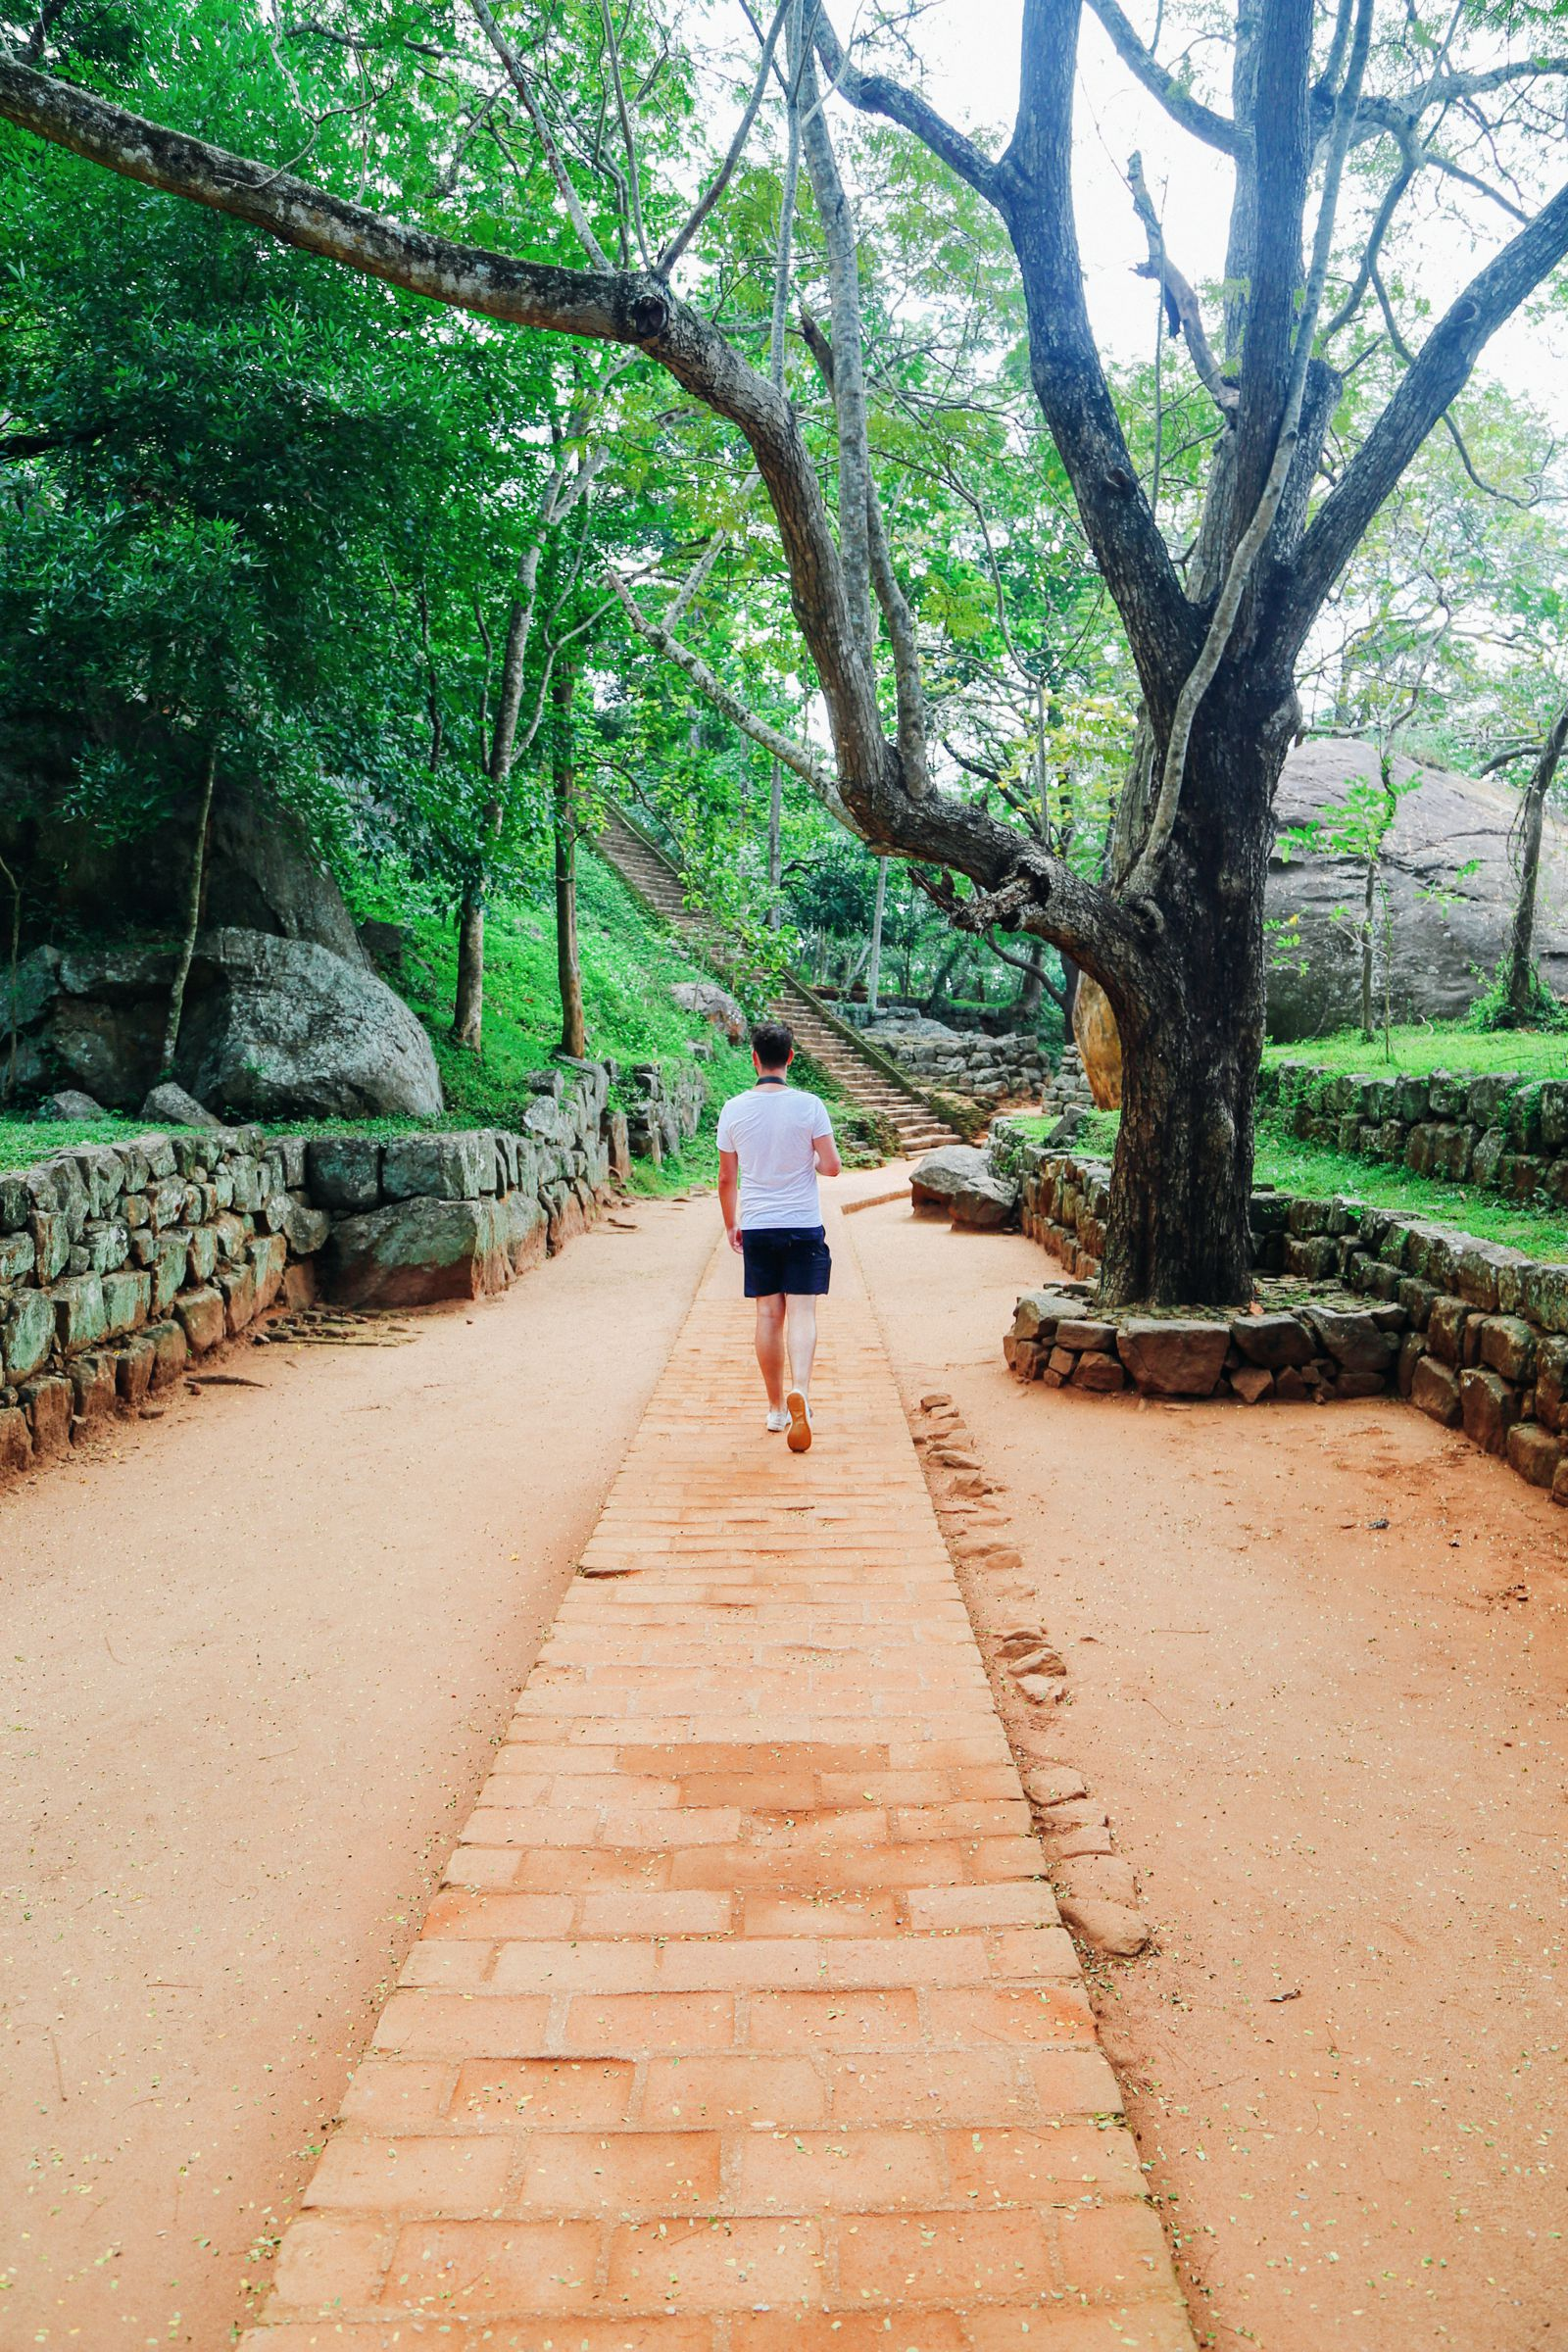 The Complete Guide To Climbing Sri Lanka's UNESCO World Heritage Site Of Sigiriya - Lion Rock (64)